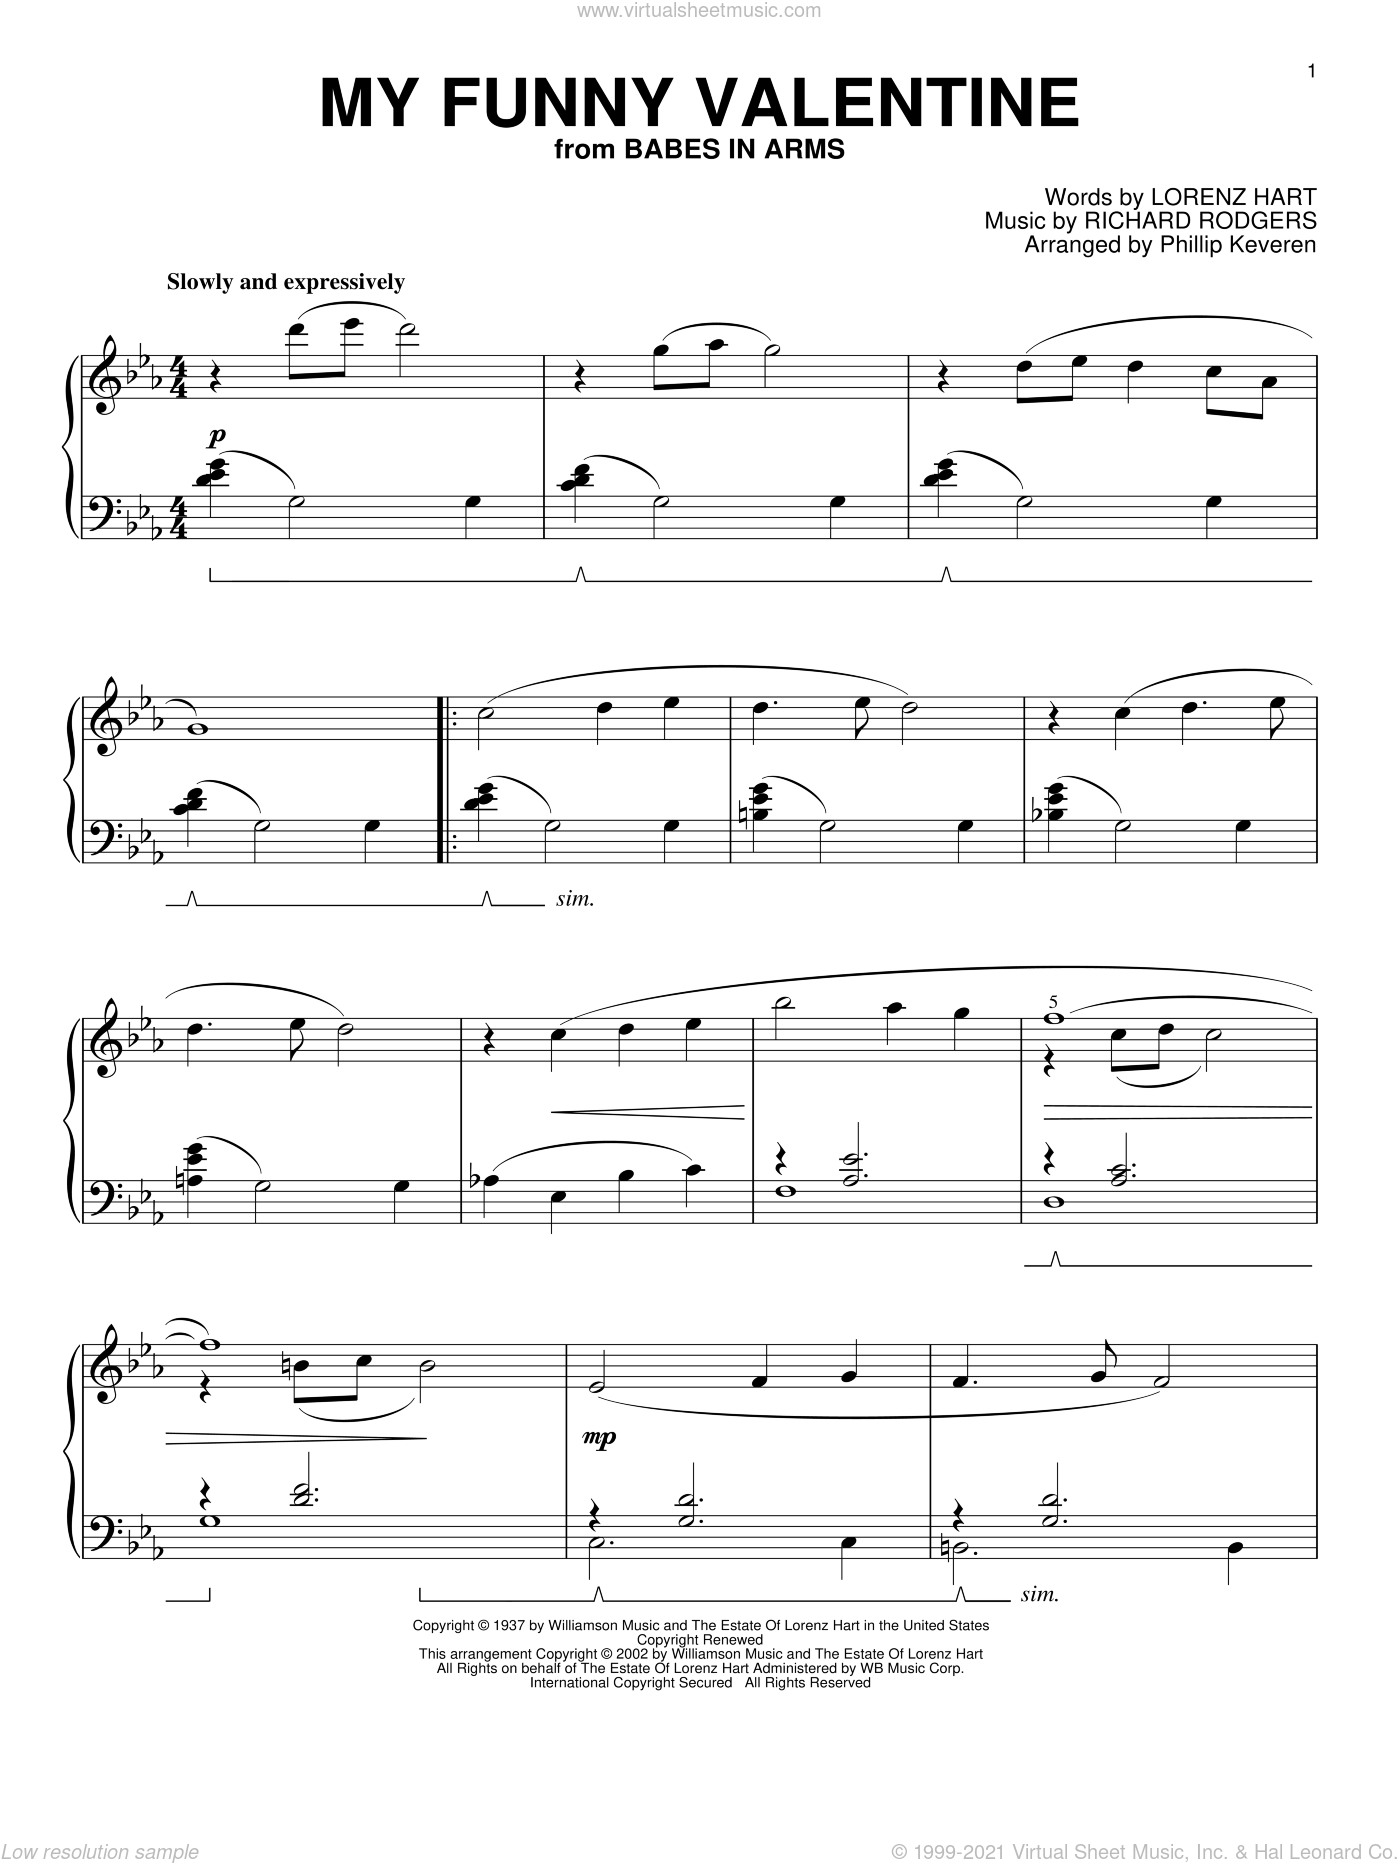 My Funny Valentine sheet music for piano solo by Rodgers & Hart, Phillip Keveren, Babes In Arms (Musical), Lorenz Hart and Richard Rodgers, intermediate skill level